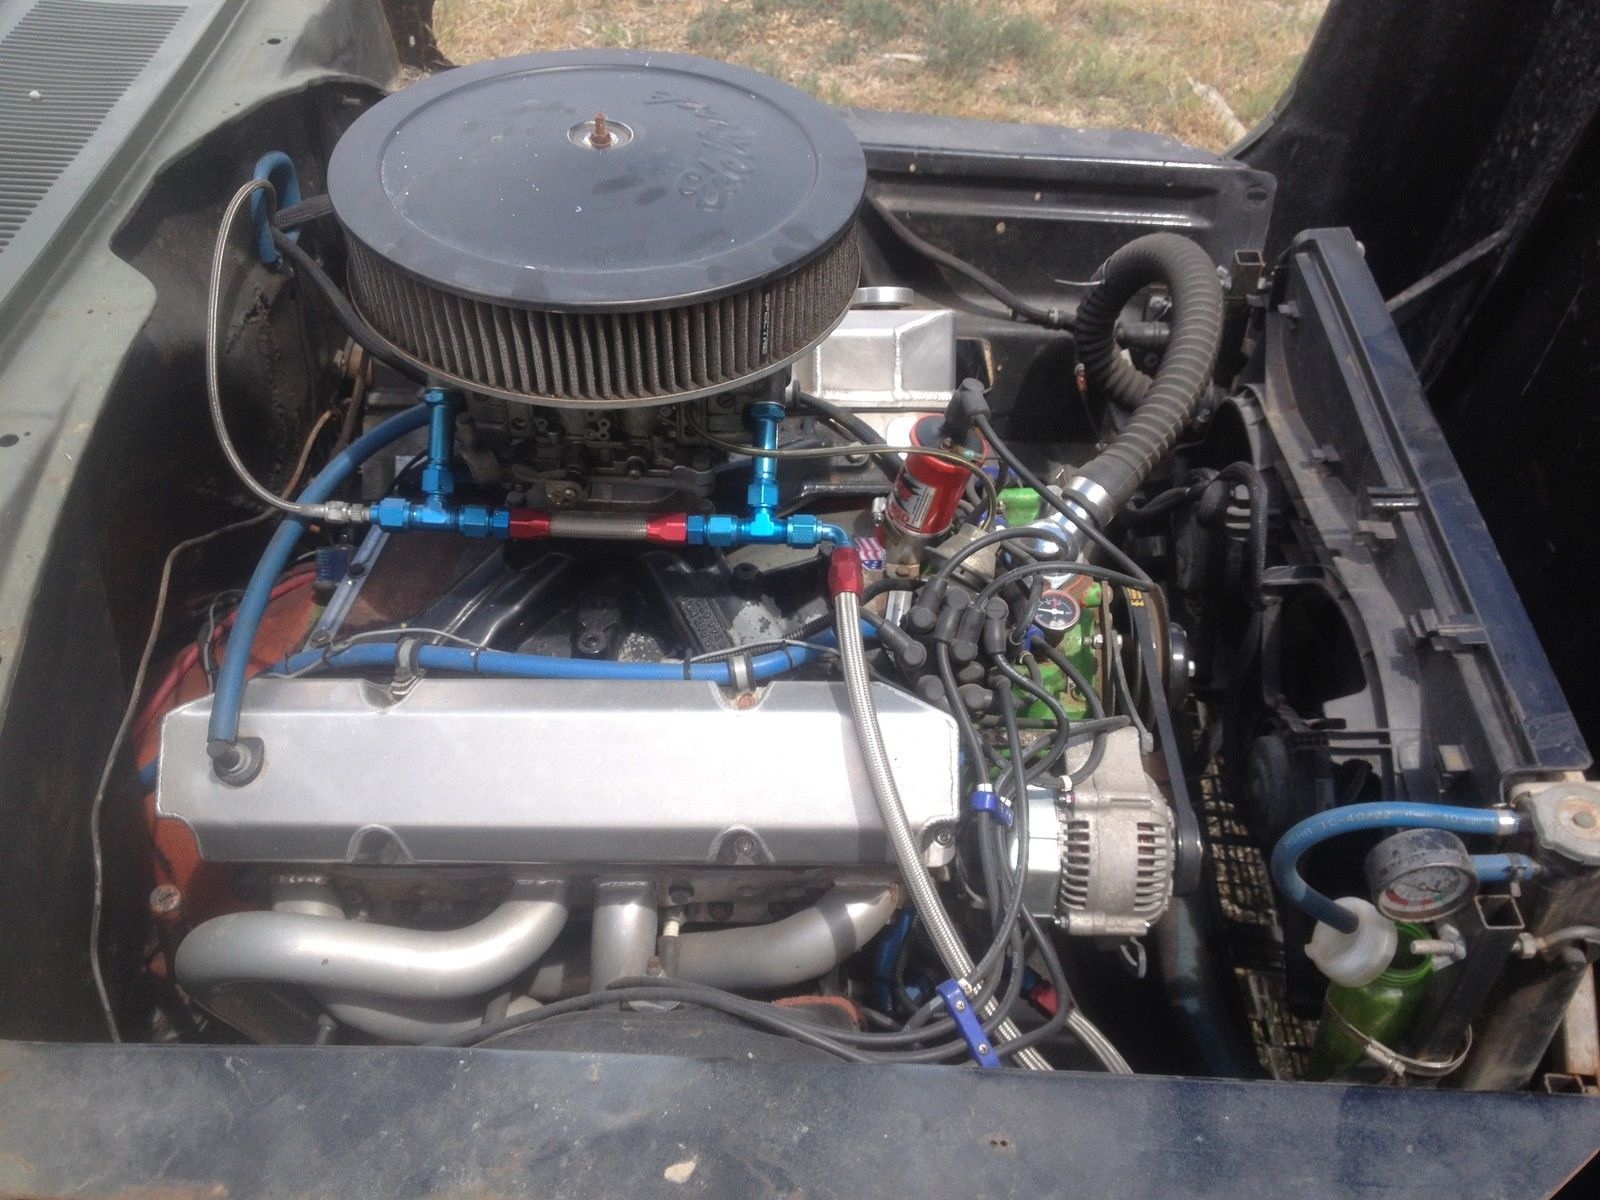 1966 Gto Wiring Harness On Ebay Electrical Diagrams Bangshift Com Find A Dodge Coronet That Speaks To The